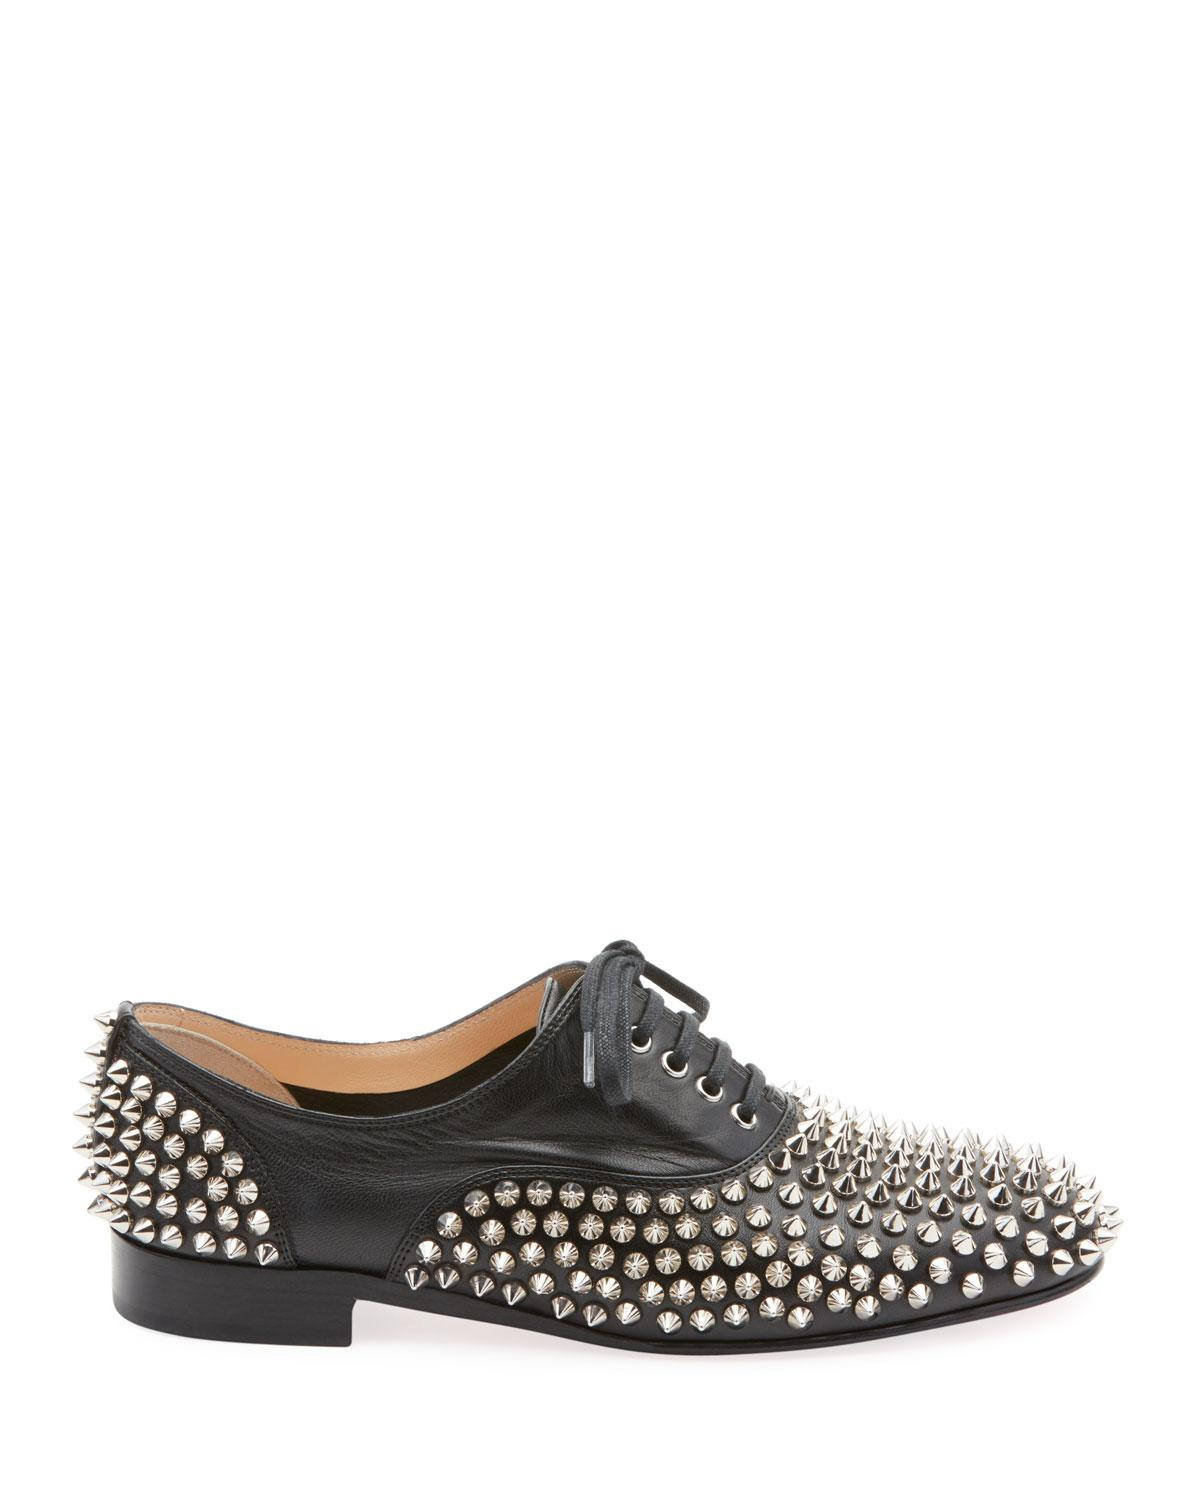 f7873f3b98b Christian Louboutin. Women s Black Freddy Spikes Red Sole Saddle Oxford  Shoes